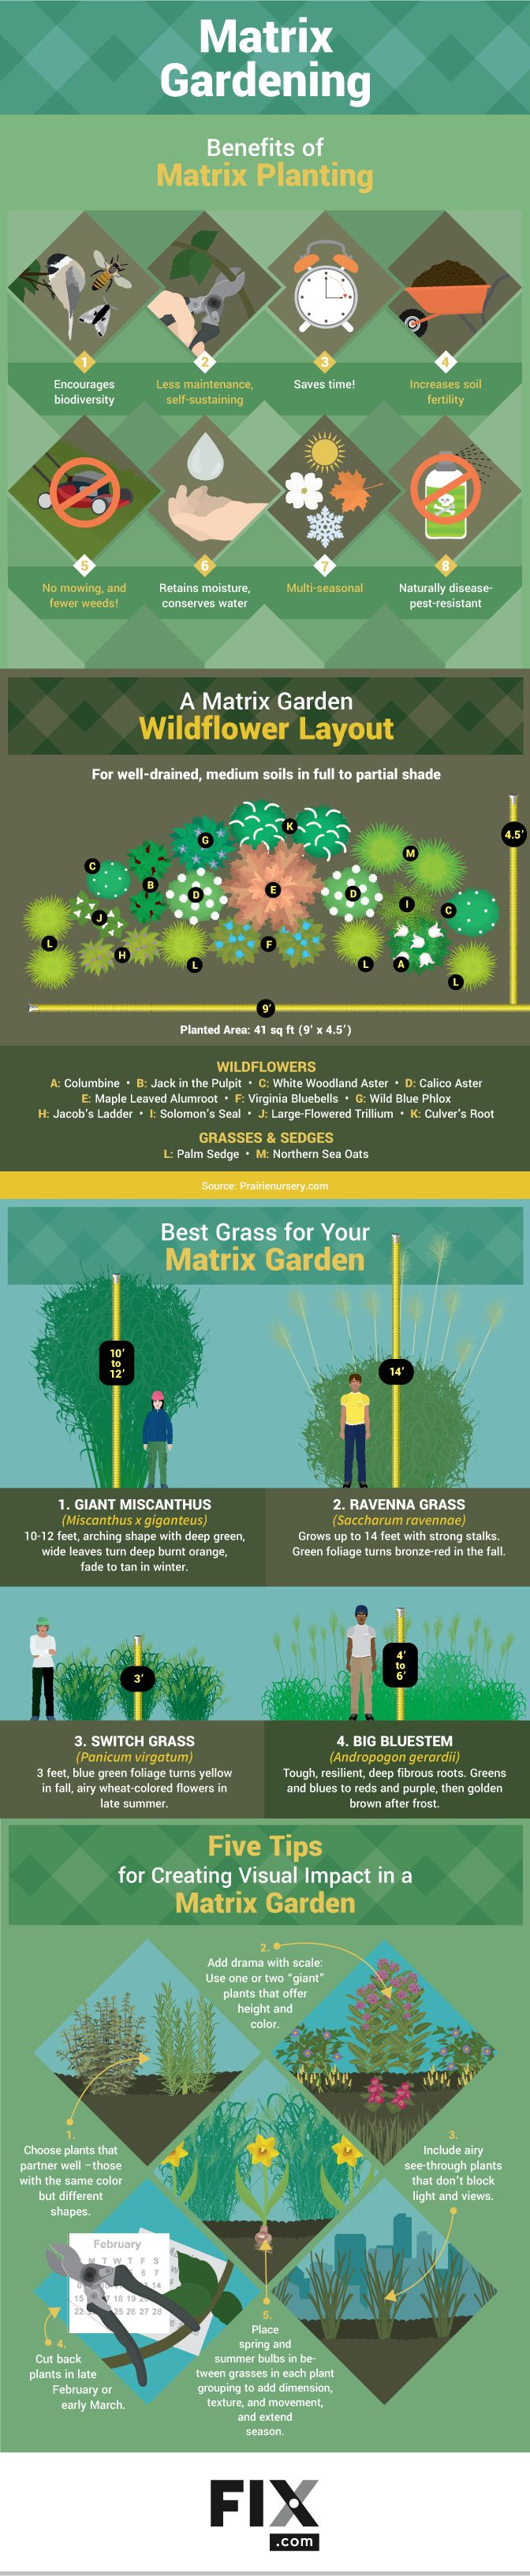 Check out Self-Sustaining Garden: Beginners Guide to Matrix Gardening [Infographic] at http://pioneersettler.com/beginners-guide-matrix-gardening/